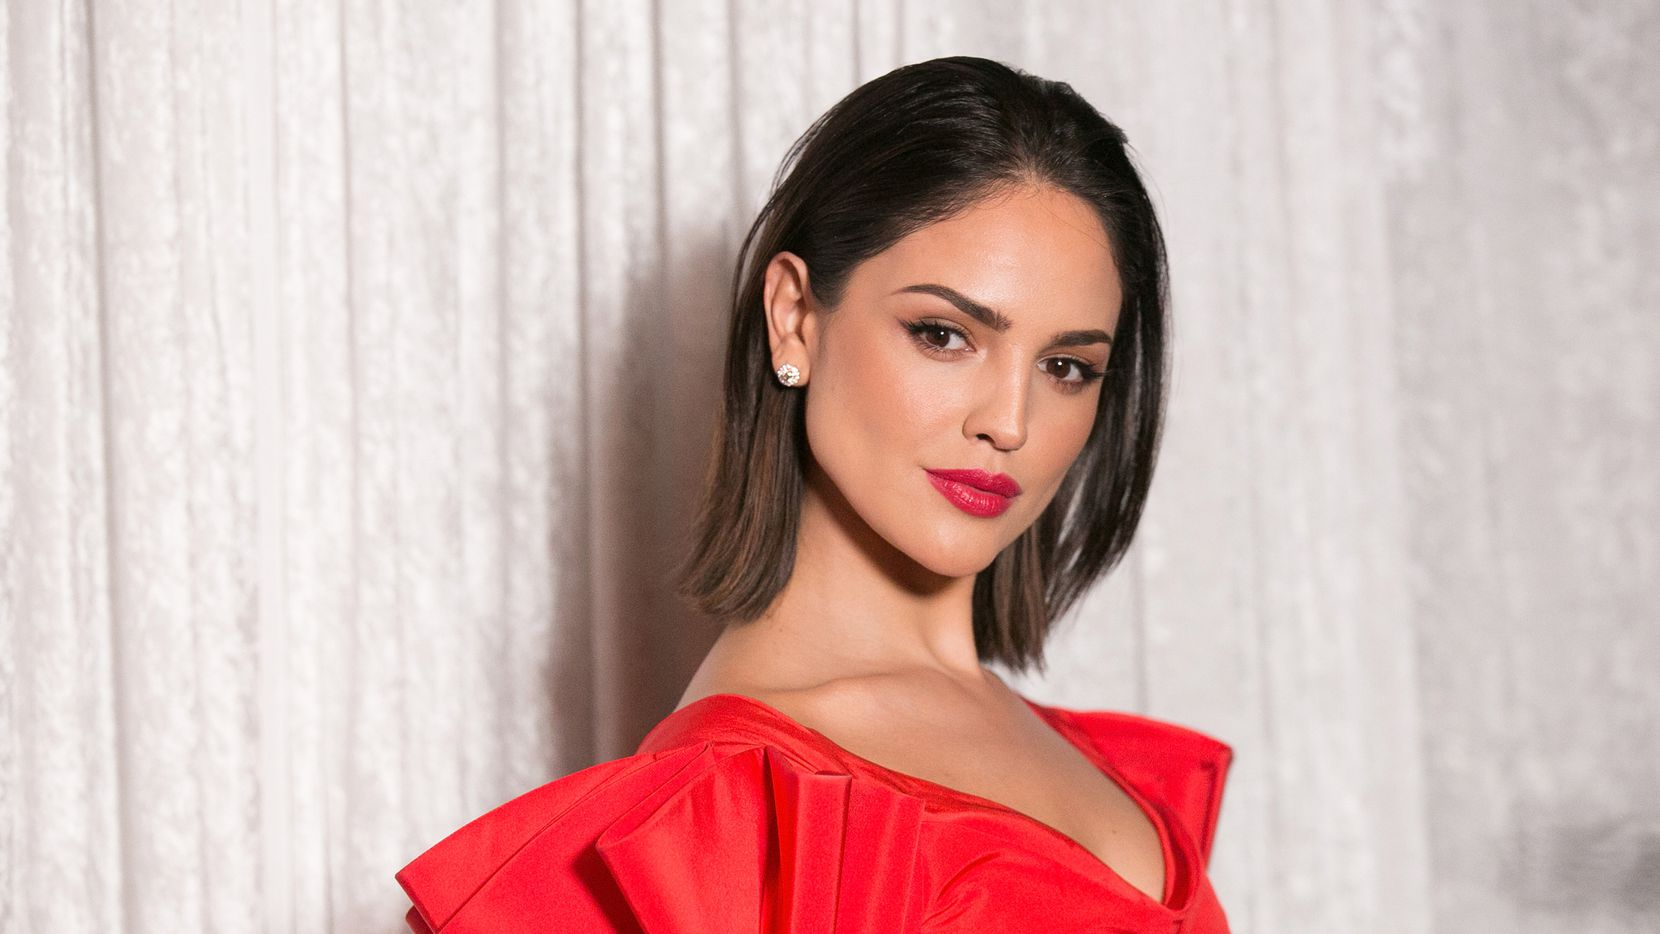 La actriz Eiza Gonzalez asistió a la cena de gala de The Fred Hollows Foundation, el 15 de noviembre de 2017, en Hollywood, California.